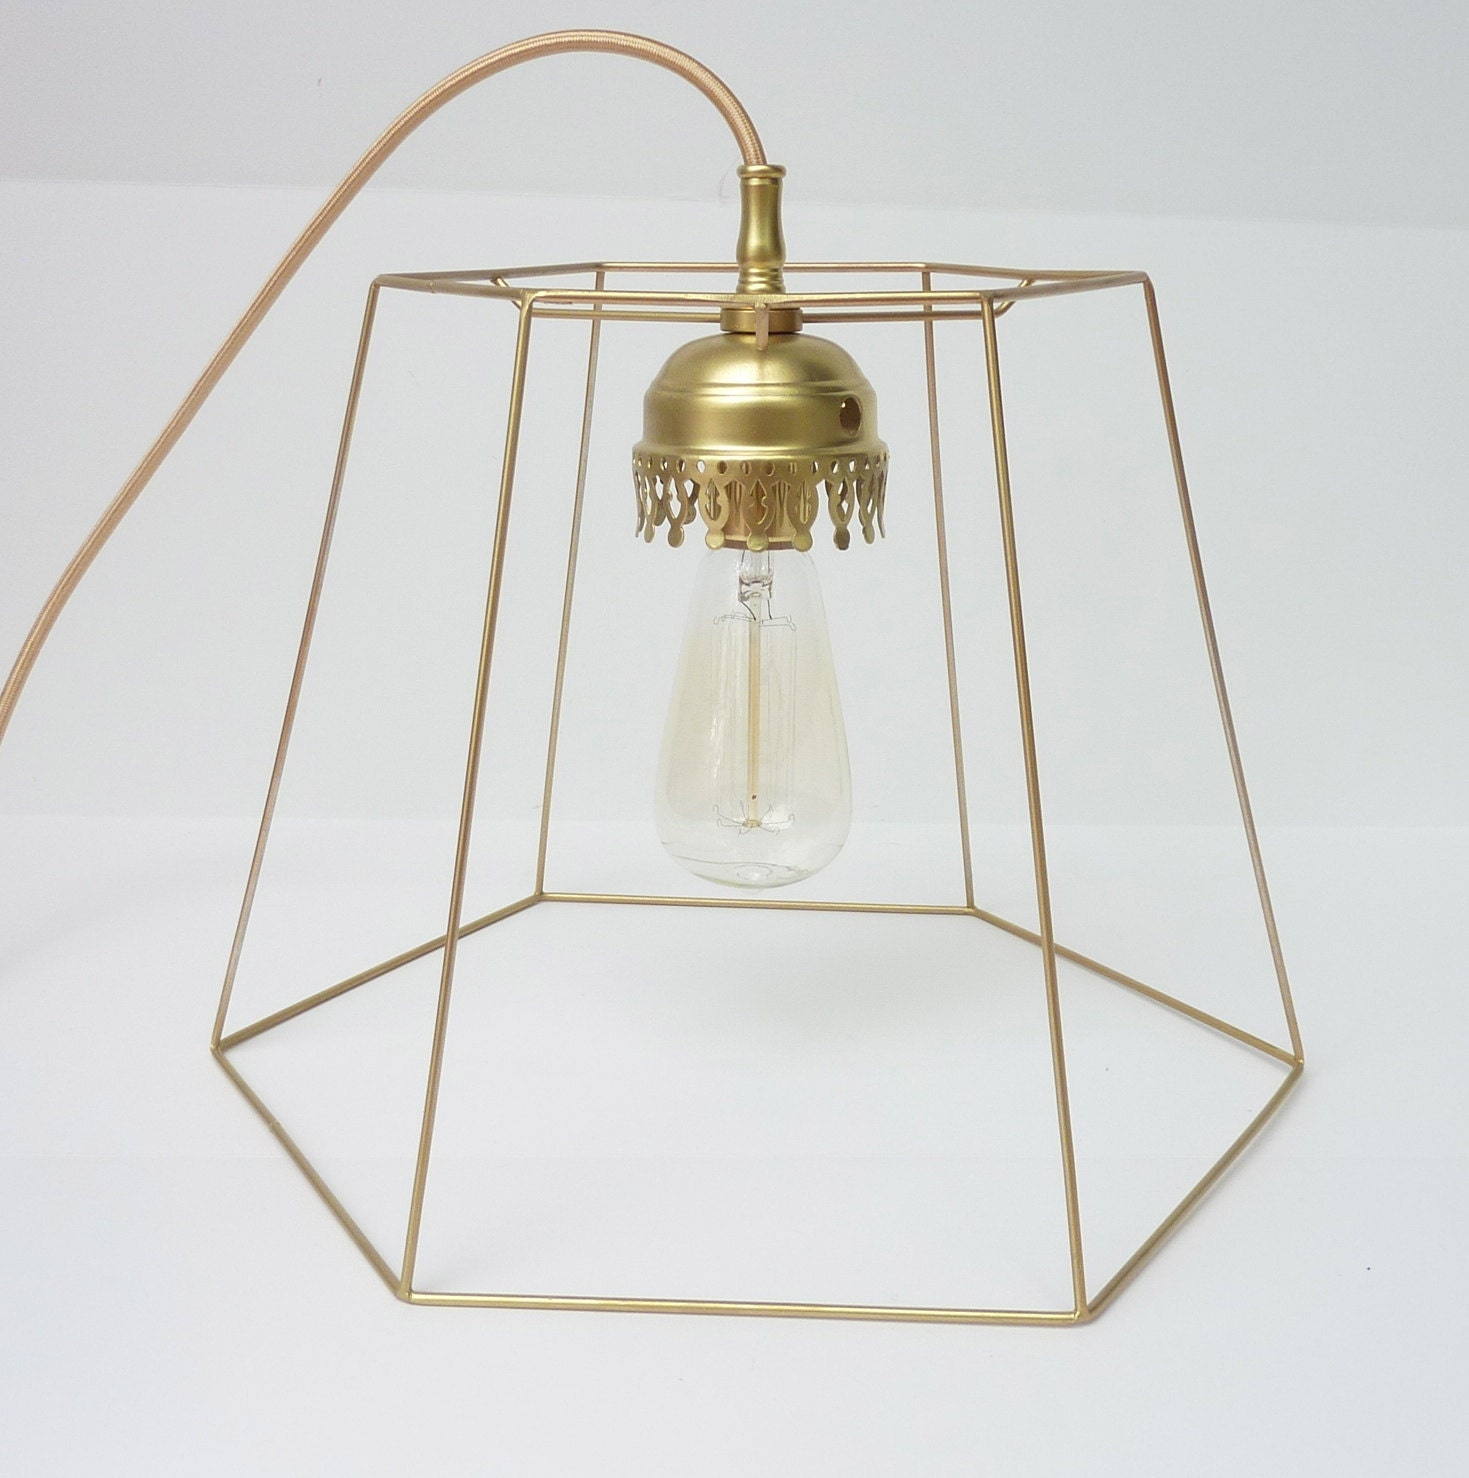 items similar to gold wire hanging pendant light on etsy